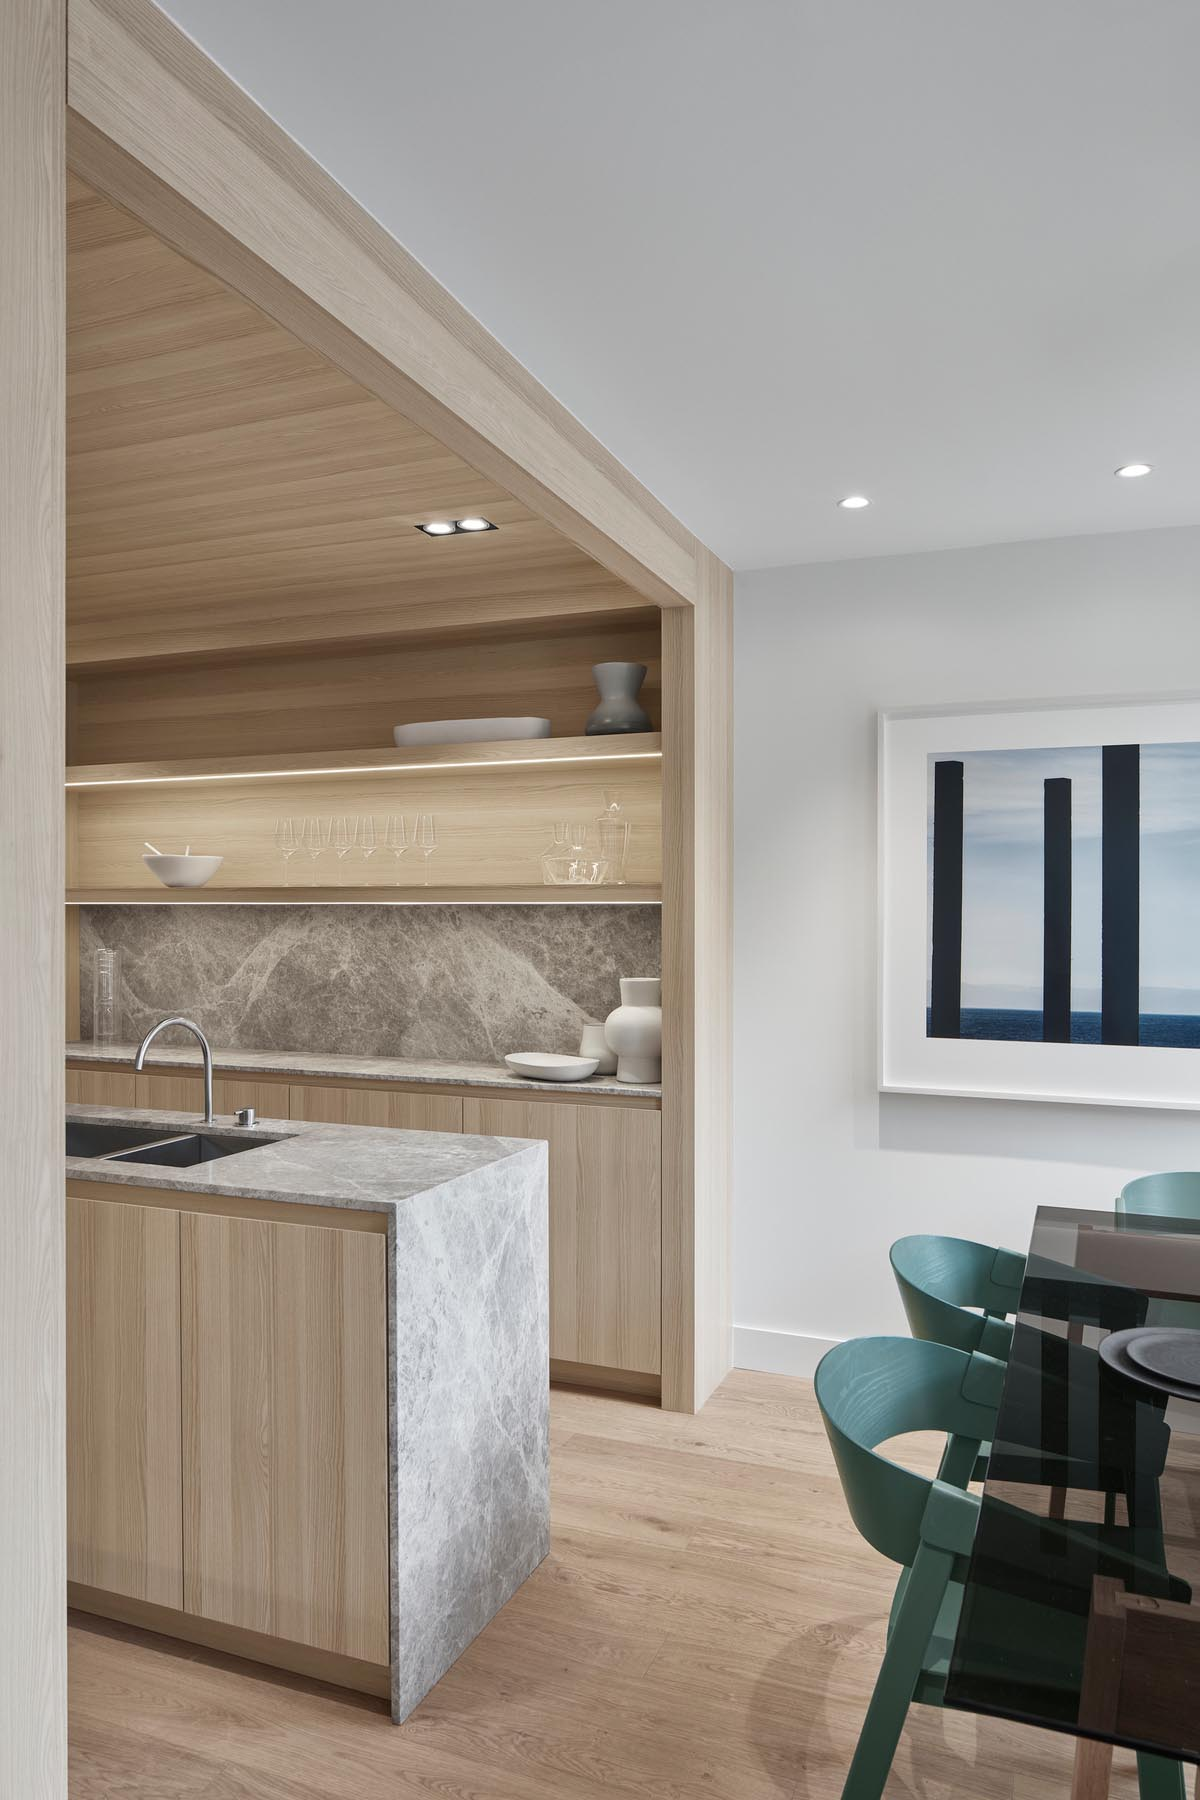 A modern kitchen with light wood cabinets, hidden lighting, and a long central island.